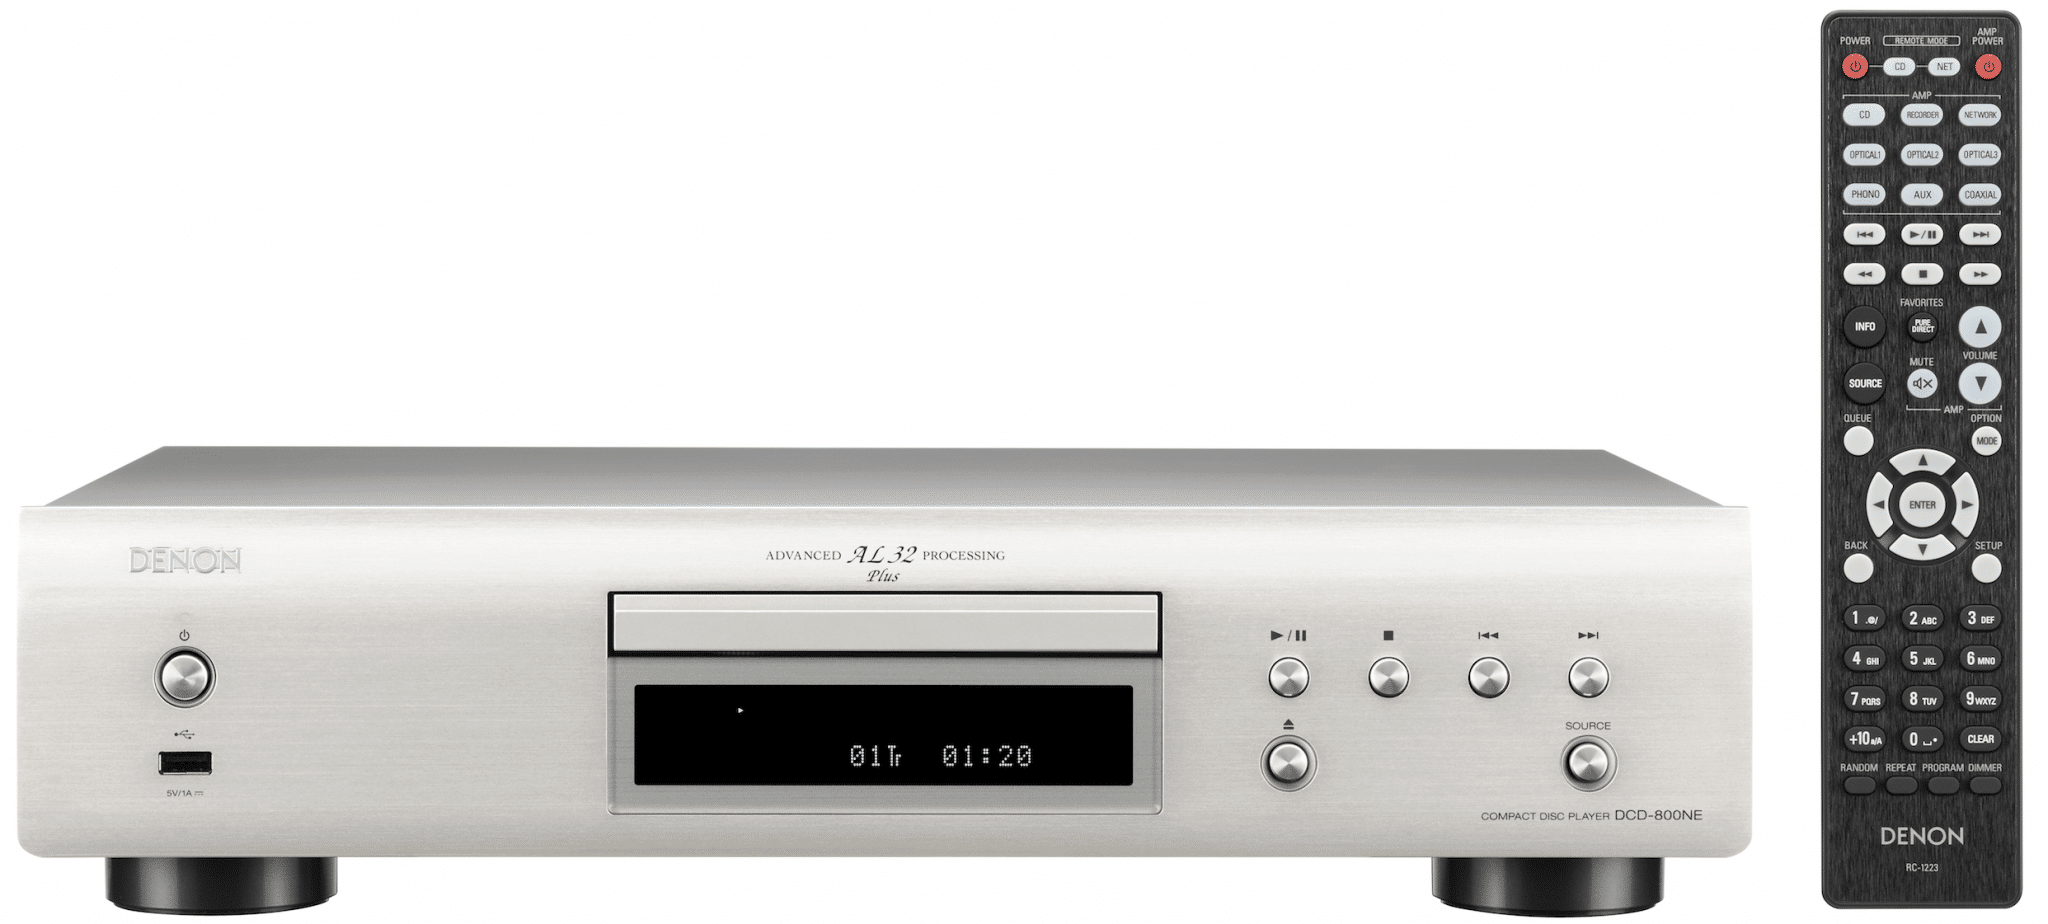 800NE Amp, CD & Network From Denon